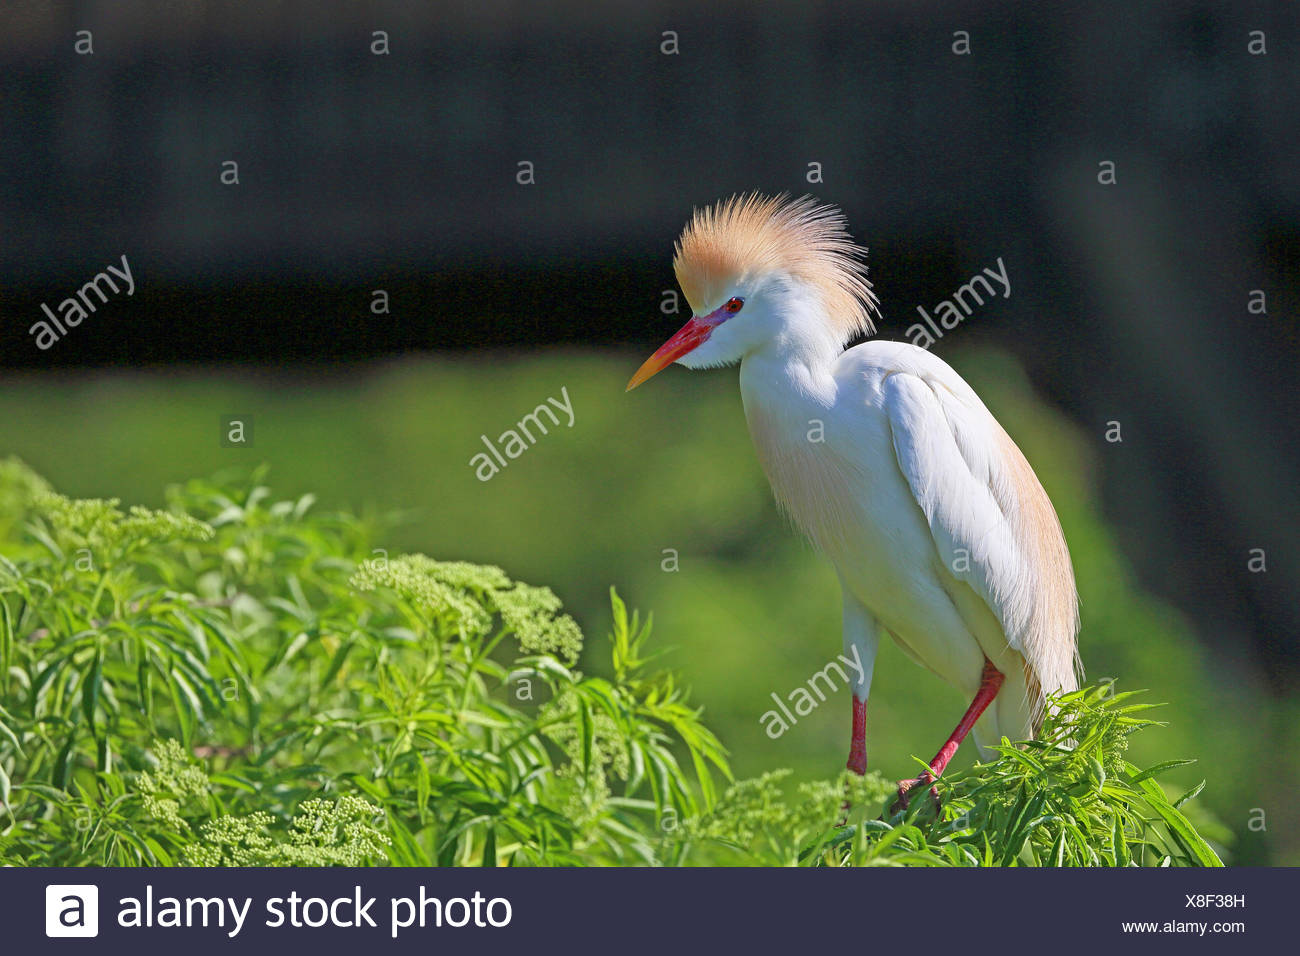 cattle egret, buff-backed heron (Ardeola ibis, Bubulcus ibis), stands on a shrub, breeding plumage, USA, Florida, Gatorland - Stock Image